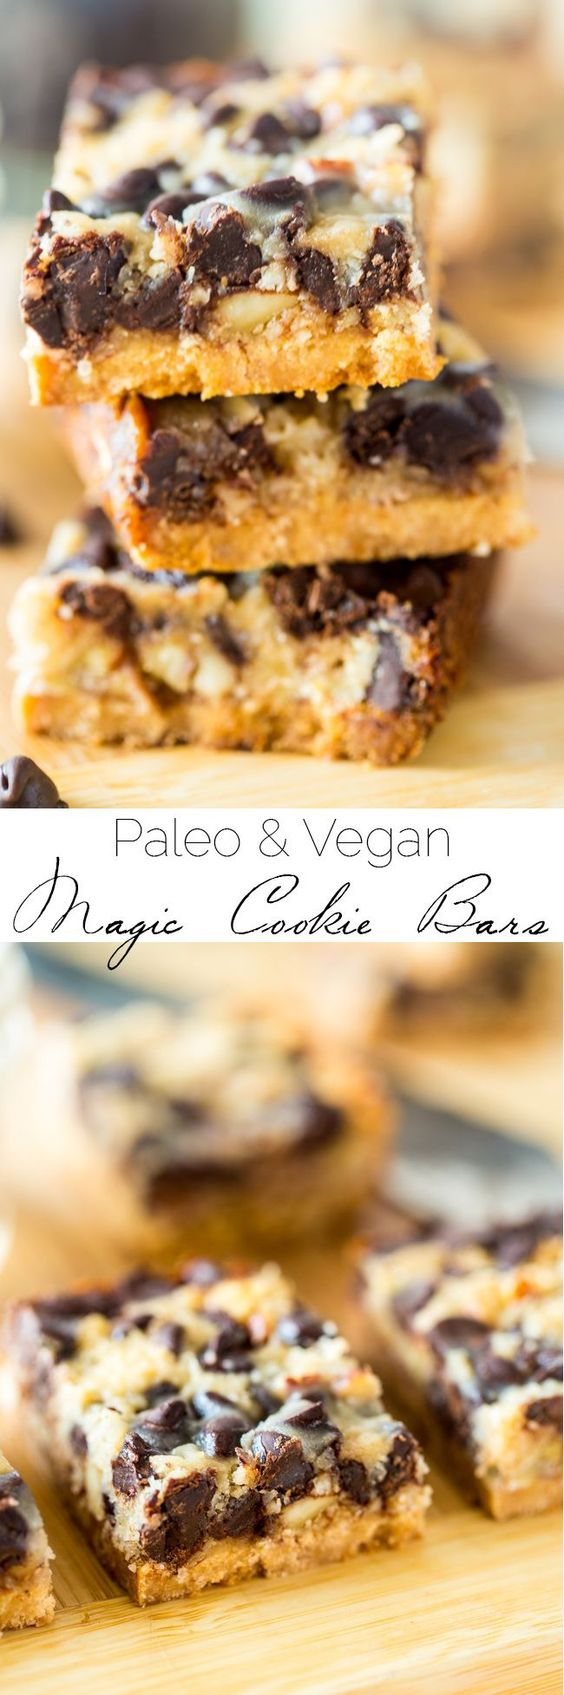 magic cookie bars2